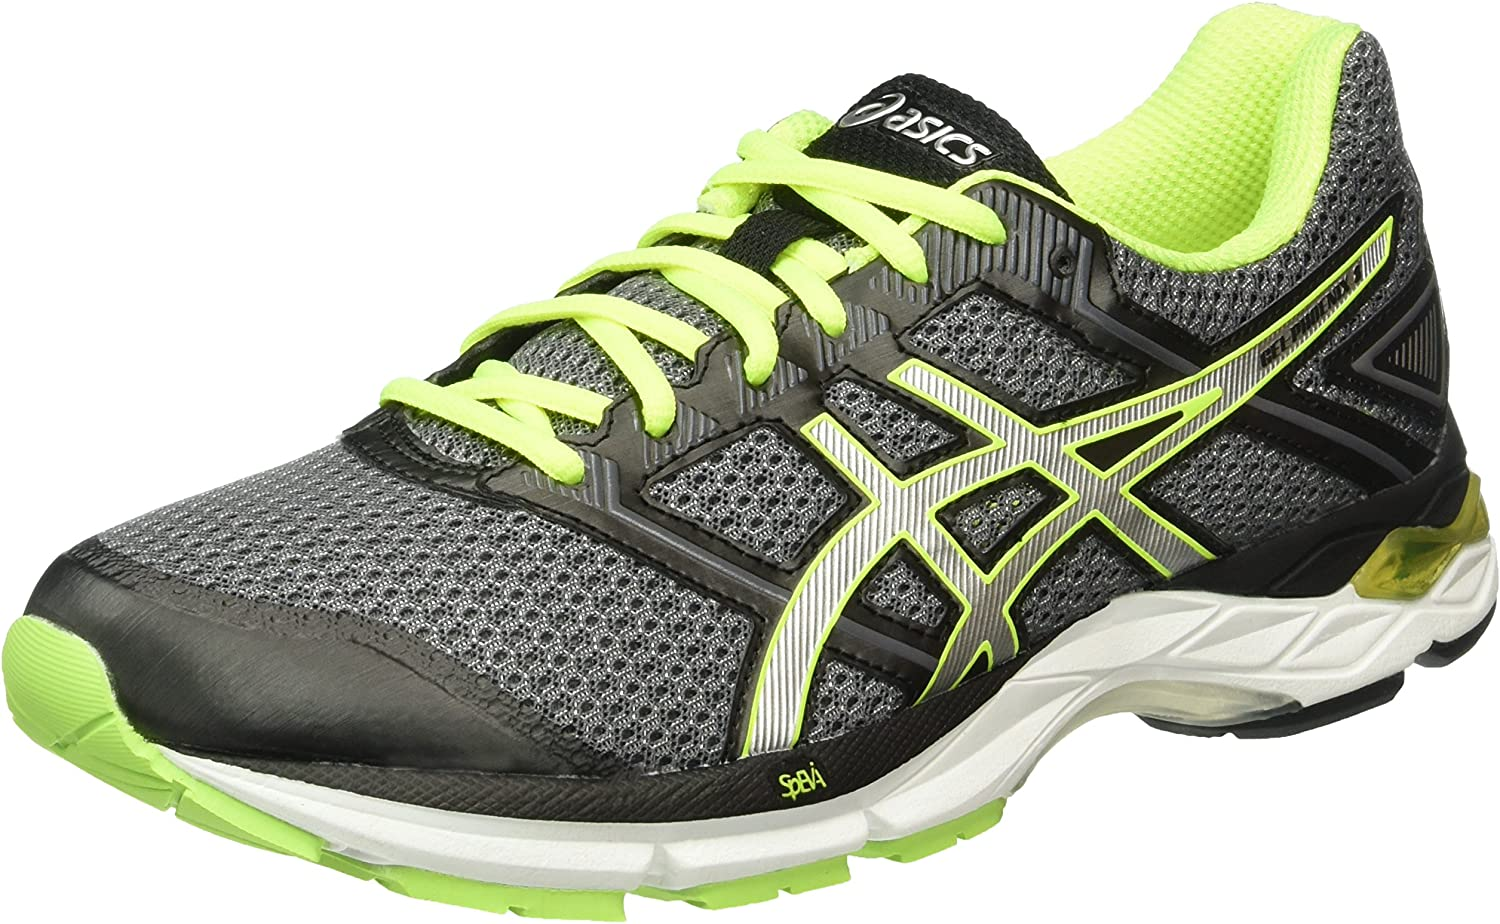 Asics Gel-Phoenix 8, Zapatillas de Running para Hombre, Gris (Carbon/Silver/Safety Yellow), 44.5 EU: Amazon.es: Zapatos y complementos